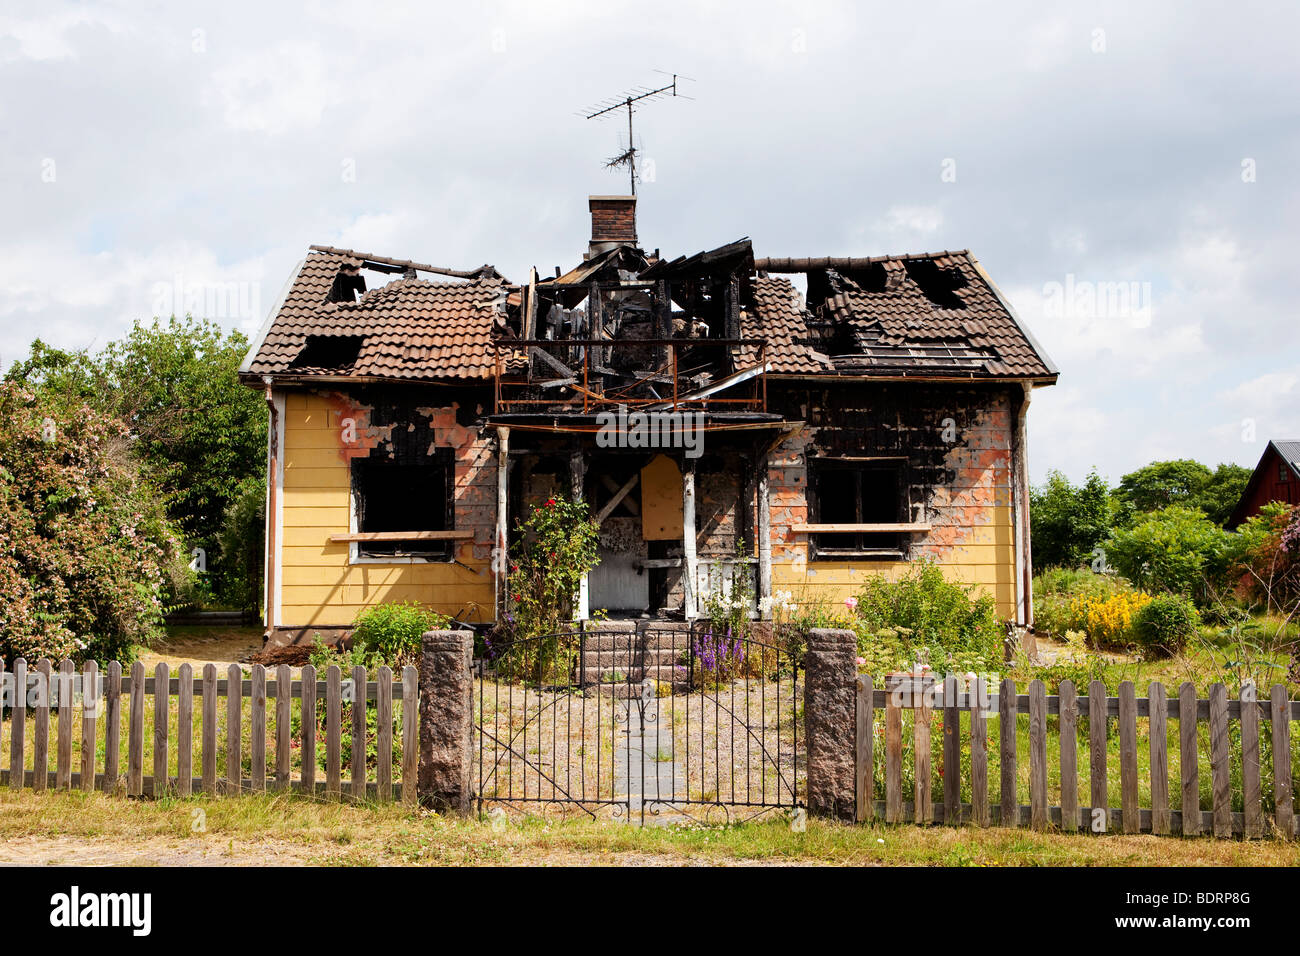 Wreck Of A Burned Out House Stock Photo Royalty Free